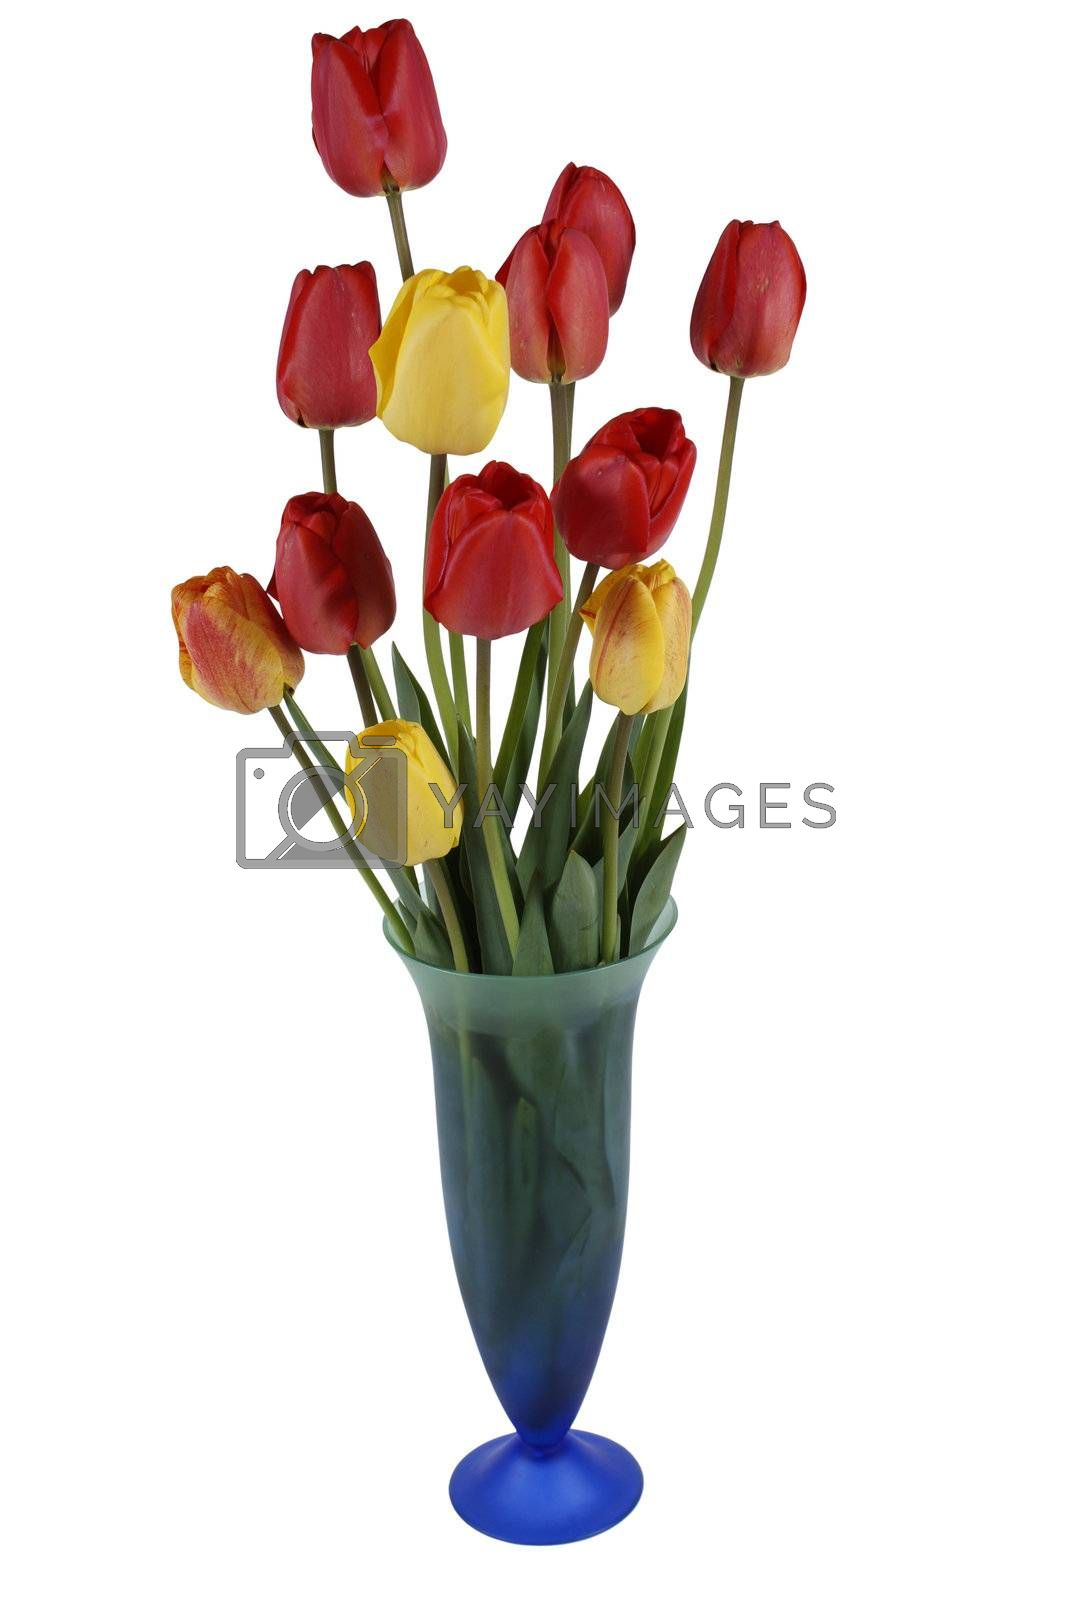 red and yellow tulip in flowerpot isolated on white background